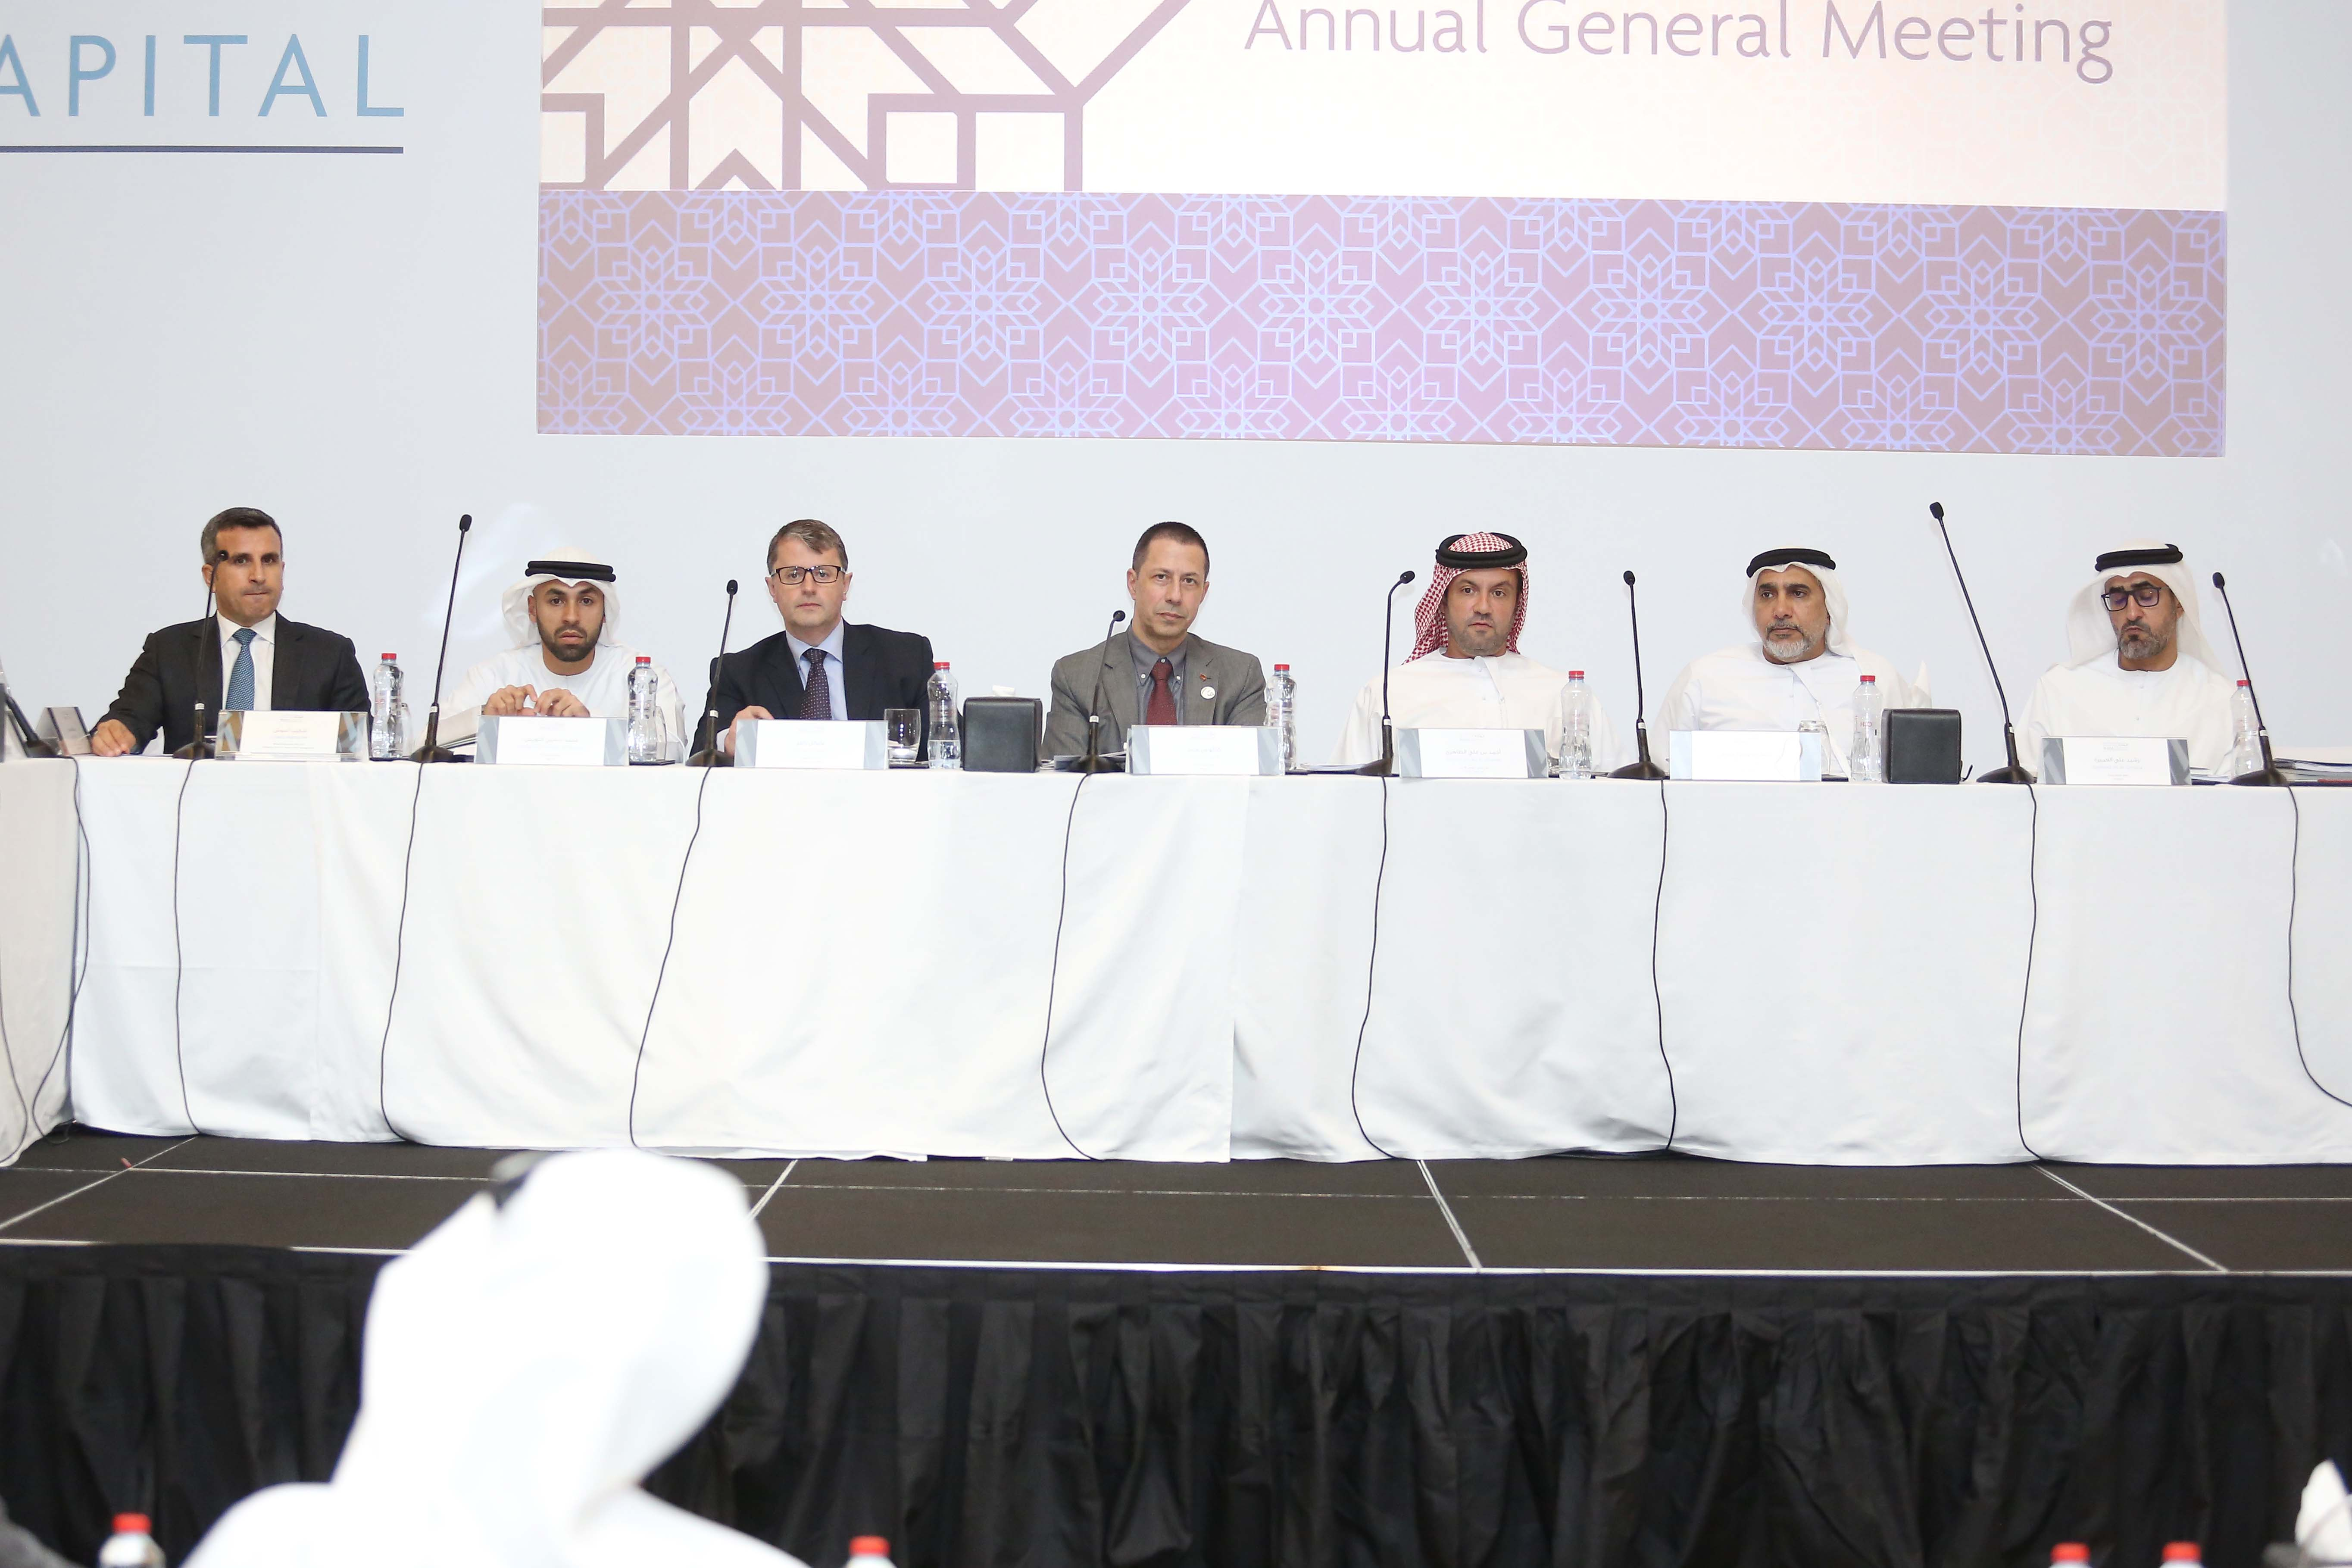 Waha Capital AGM approves 7.5 % dividend for 2018 following net profit of AED 145 million